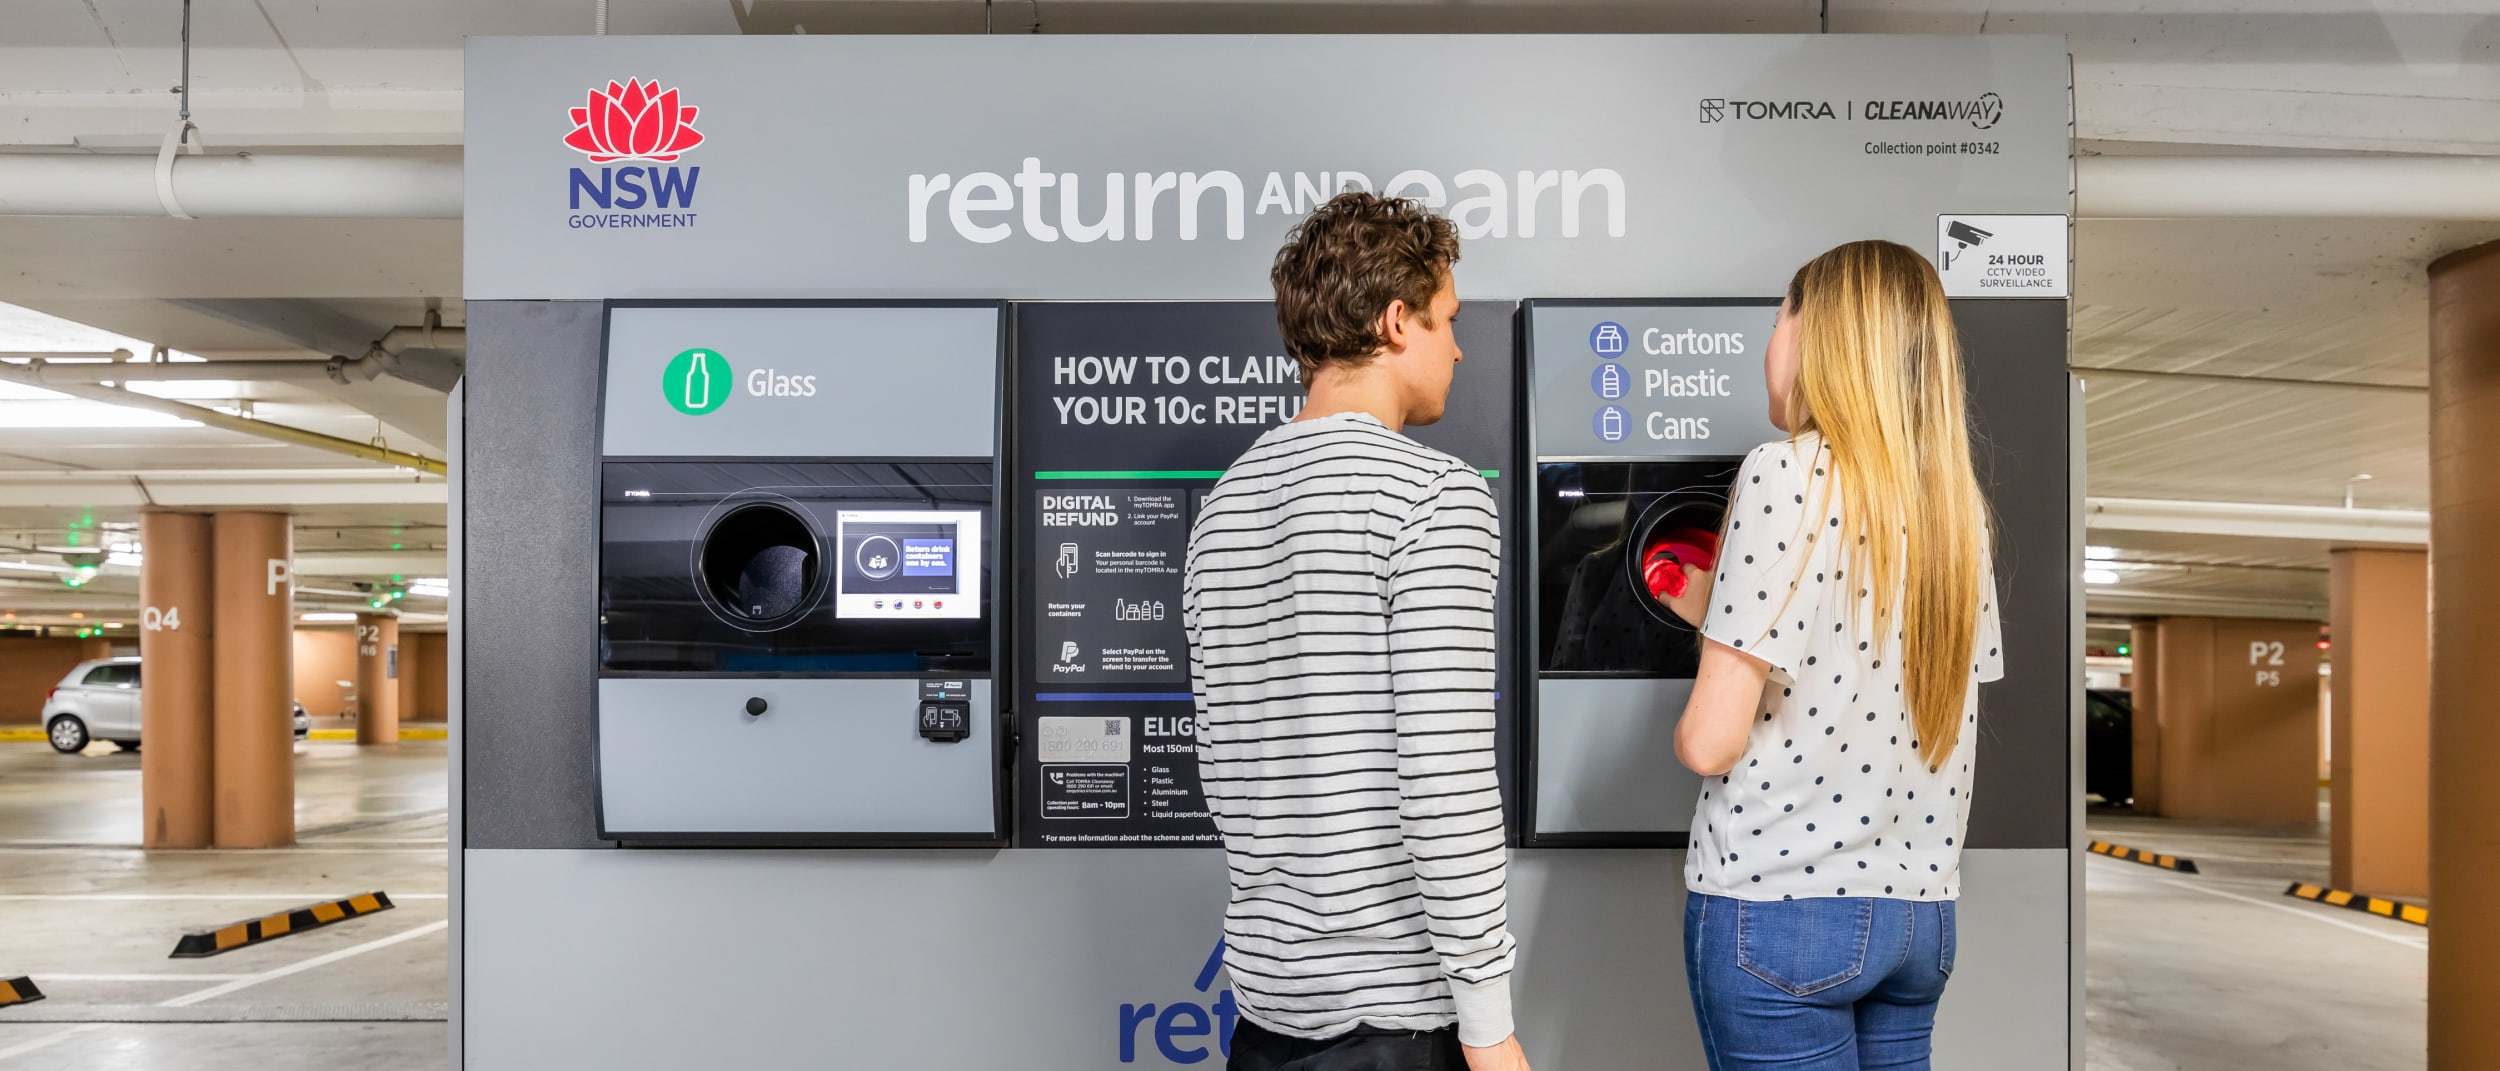 Introducing our brand new 'Return & Earn' station